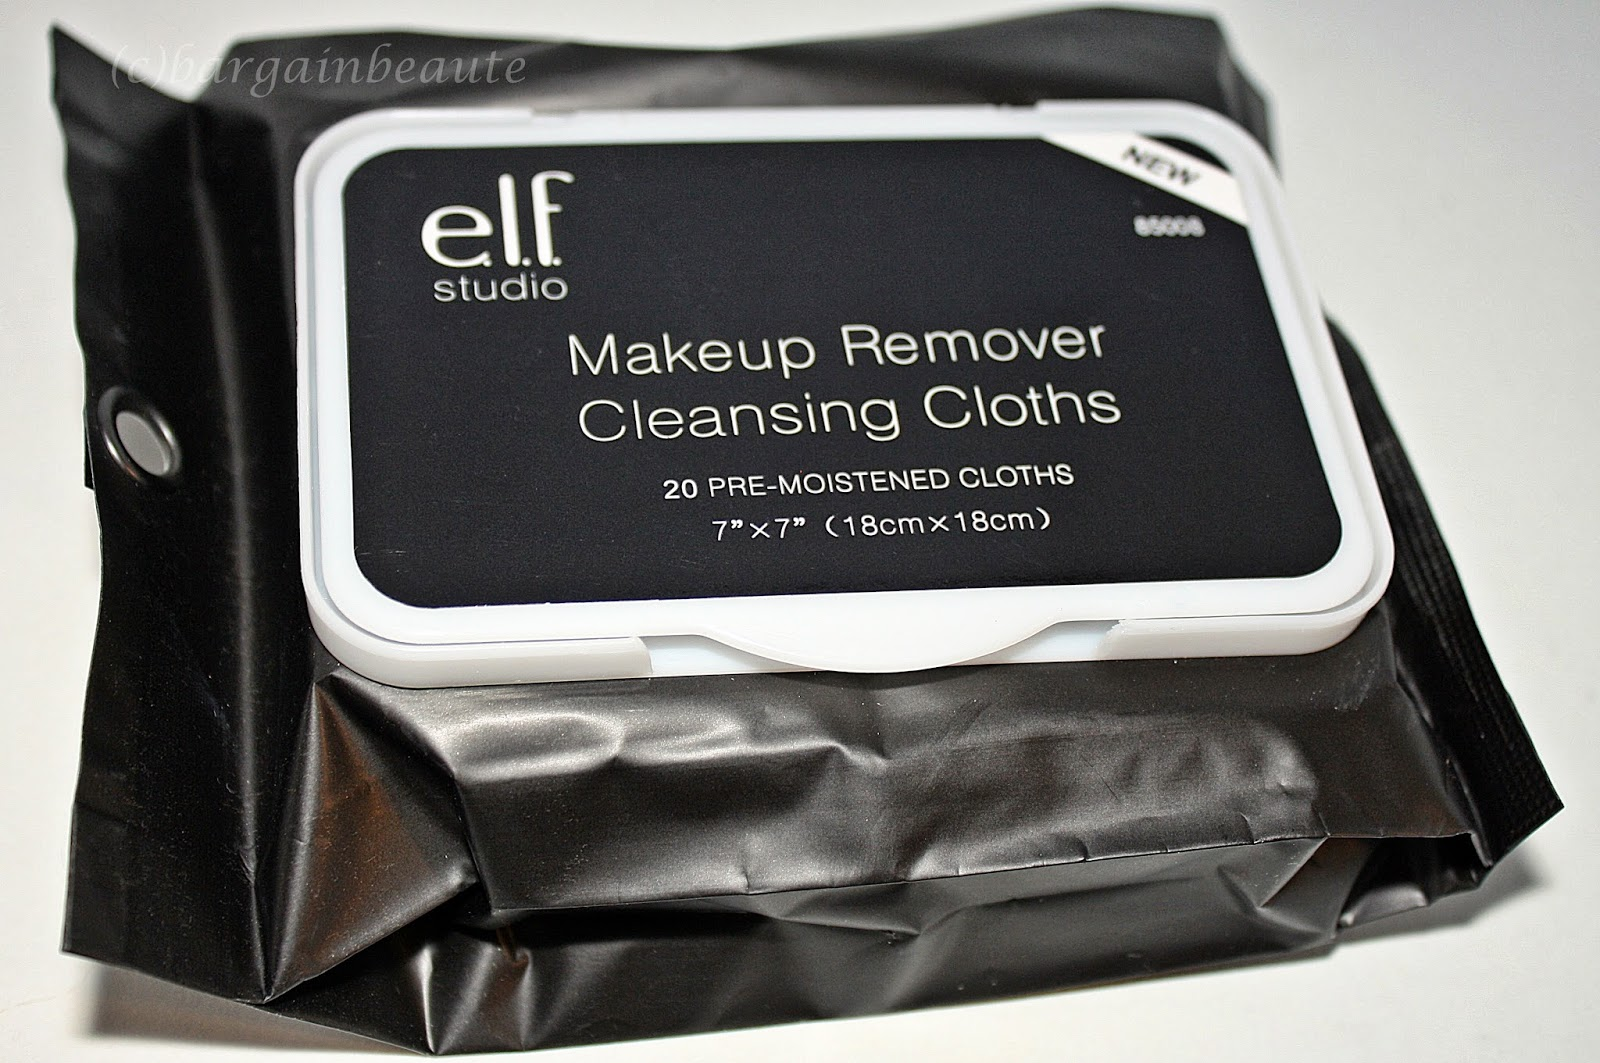 Bargain Beaute: Review: elf Makeup Remover Cleansing Cloths